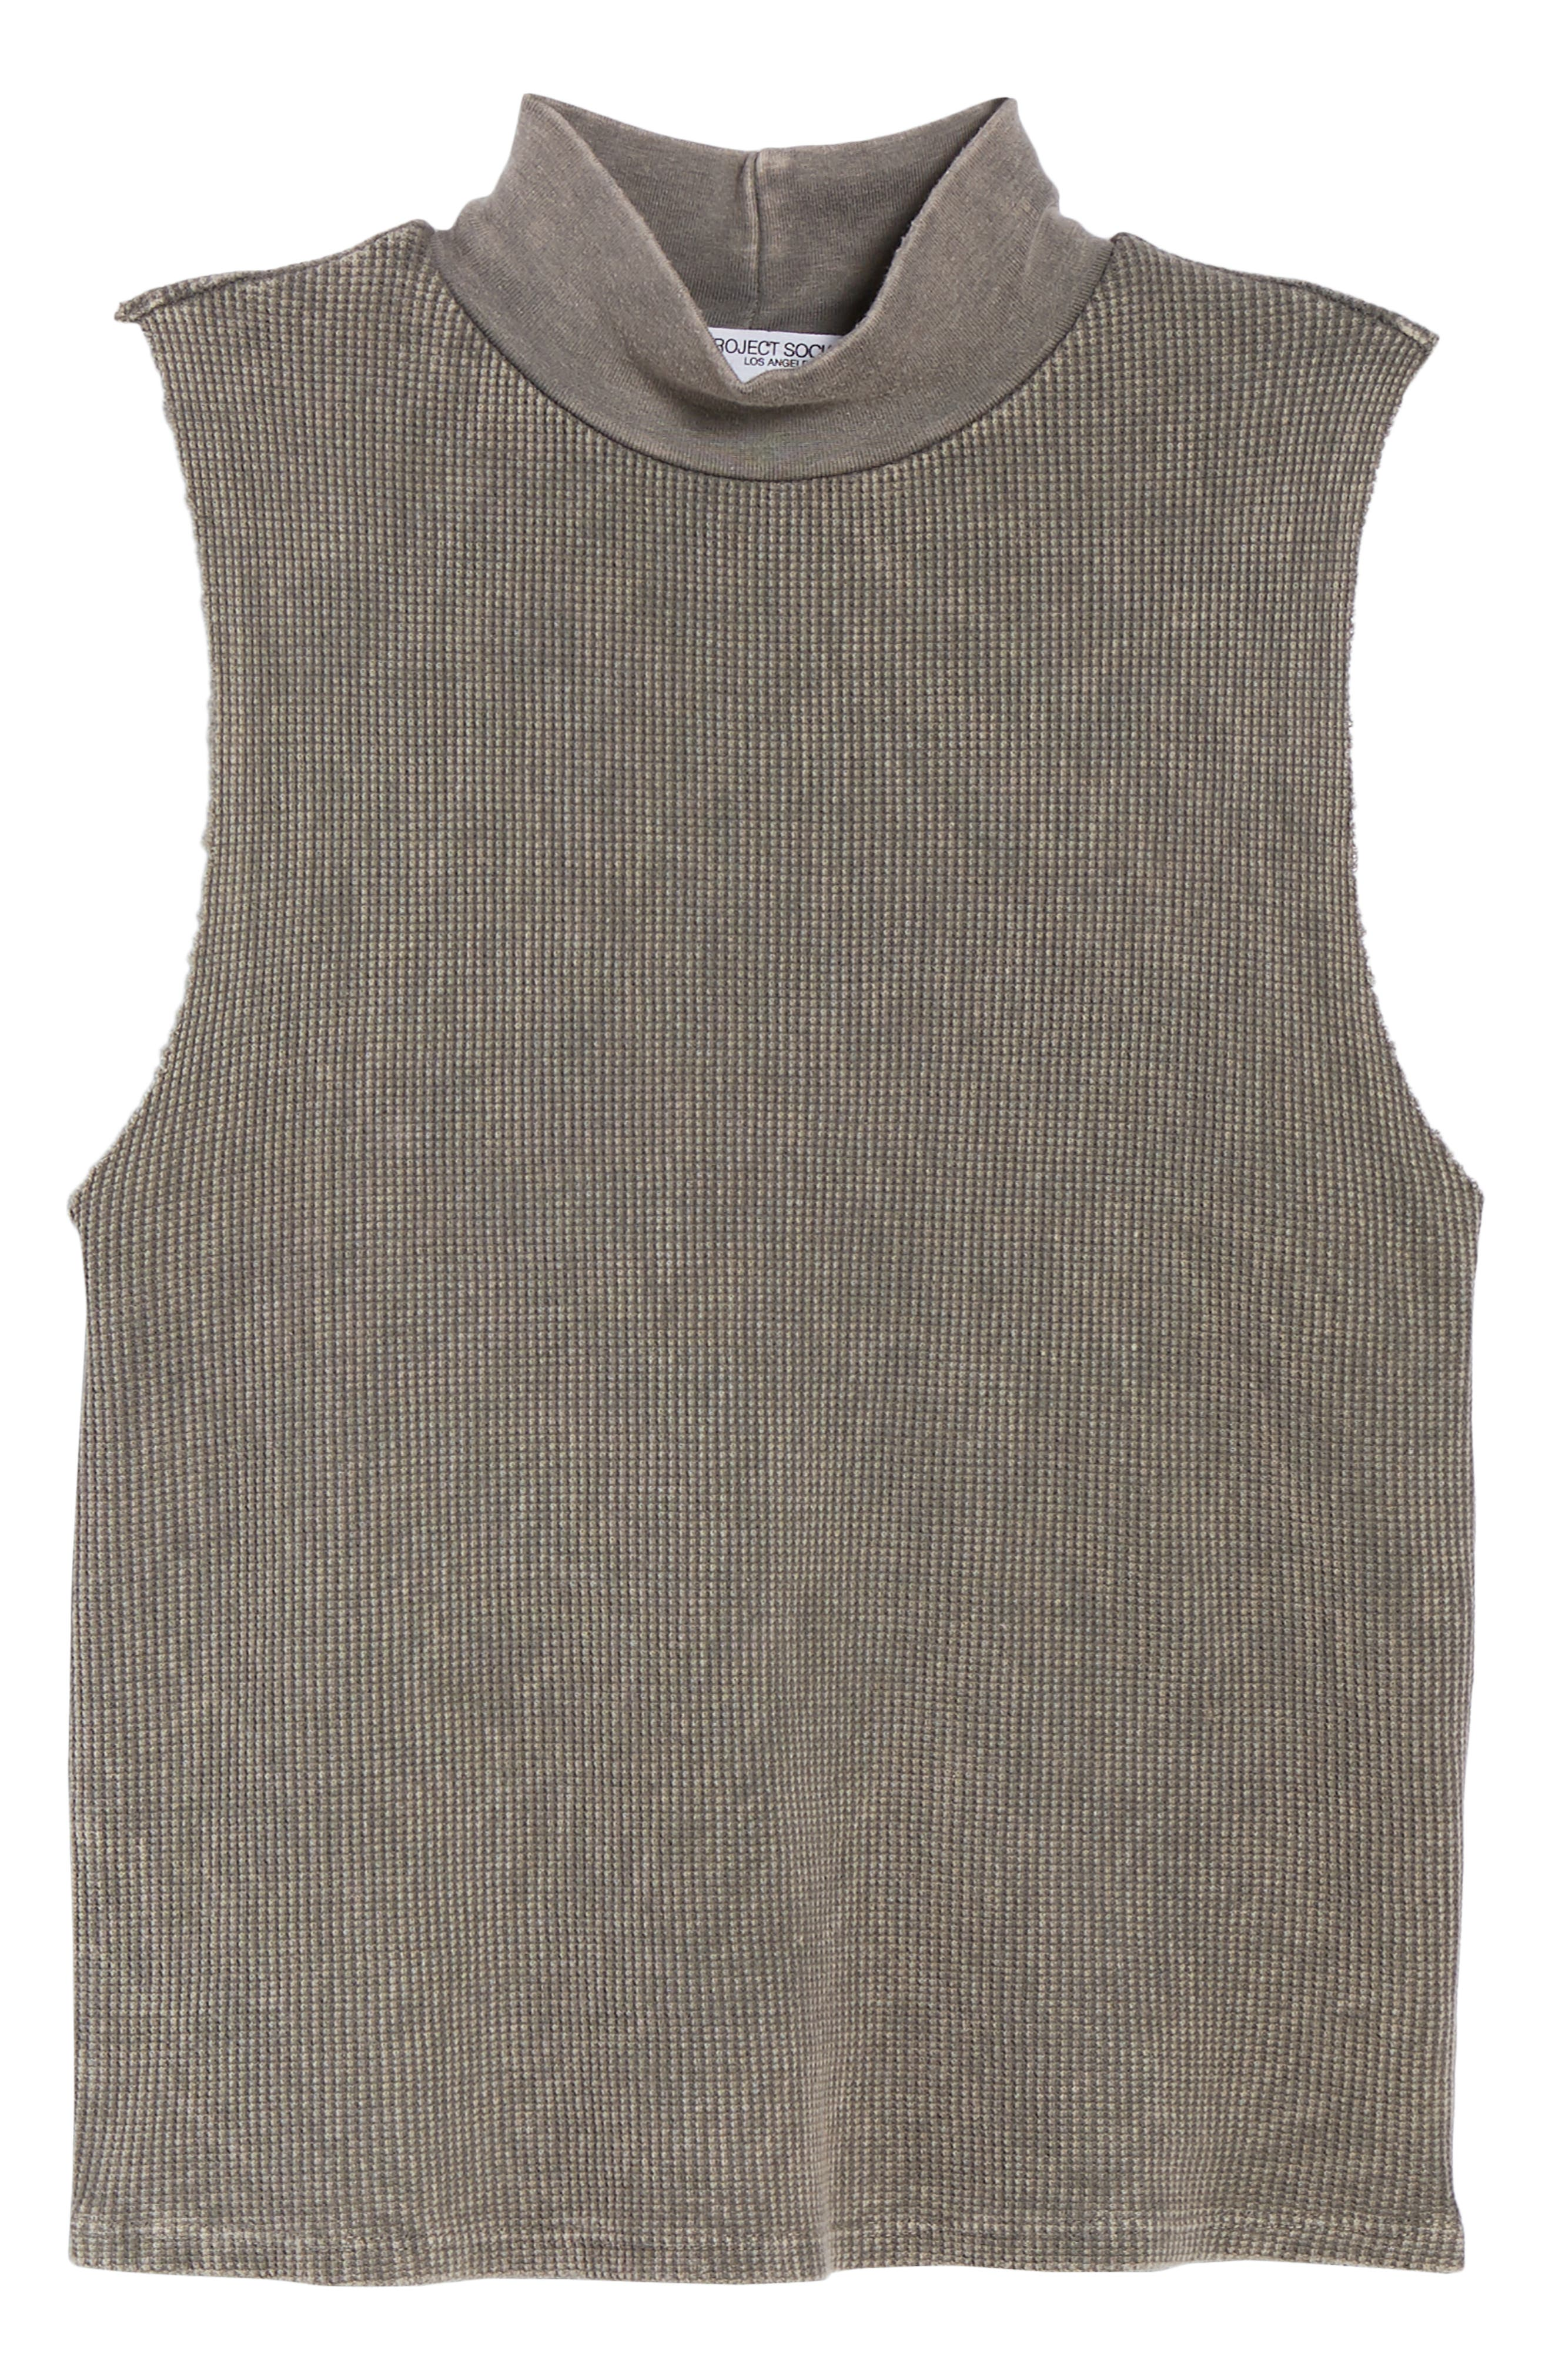 Annie Thermal Sleeveless Mock Neck Top,                             Alternate thumbnail 6, color,                             MW SMOKY NOIR